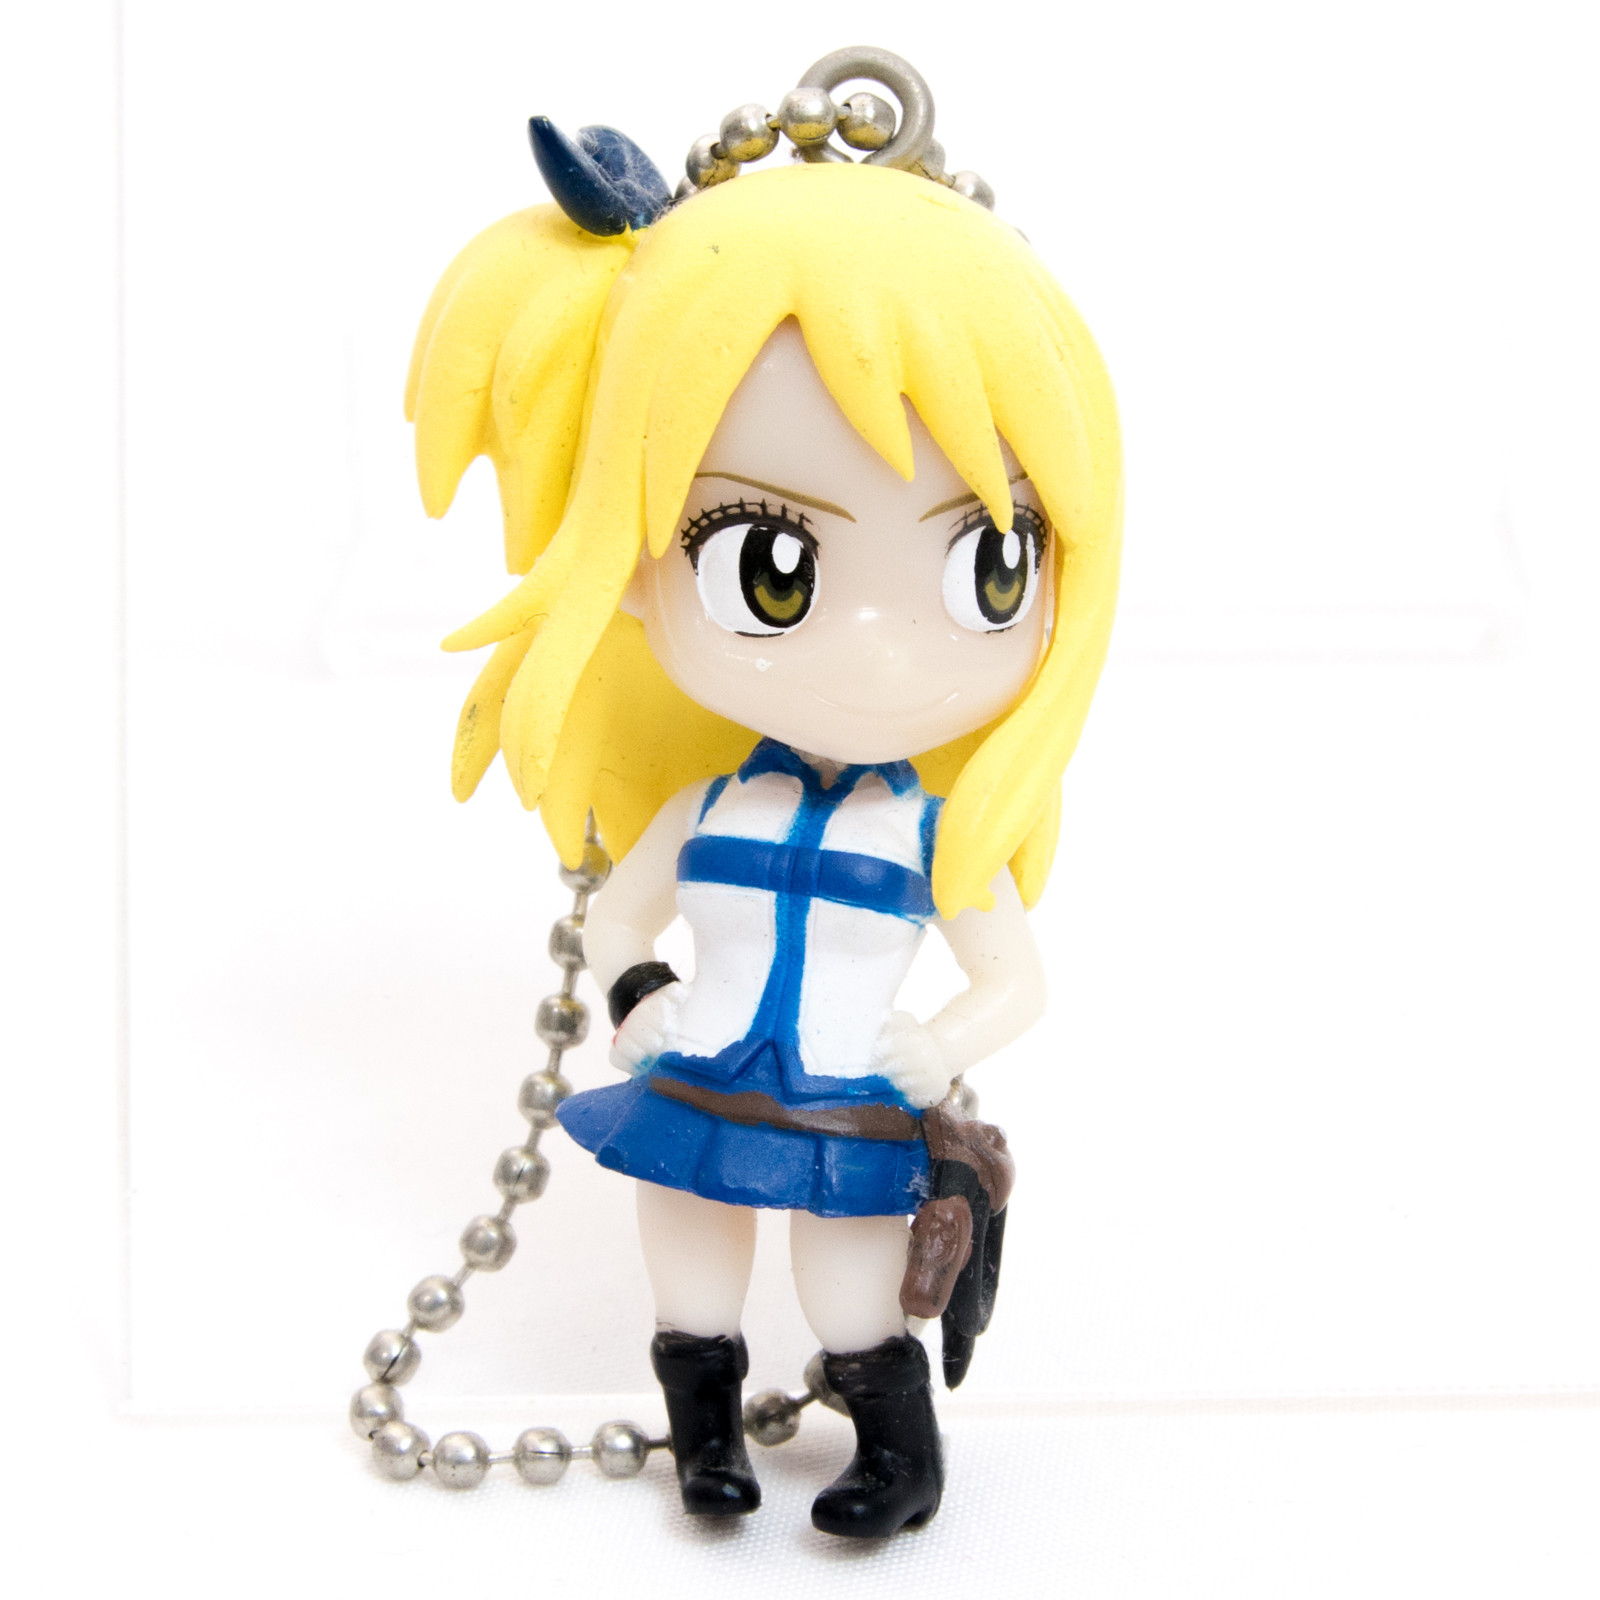 FAIRY TAIL Fairy Tail Lucy Heartfilia Figure Ballchain JAPAN ANIME